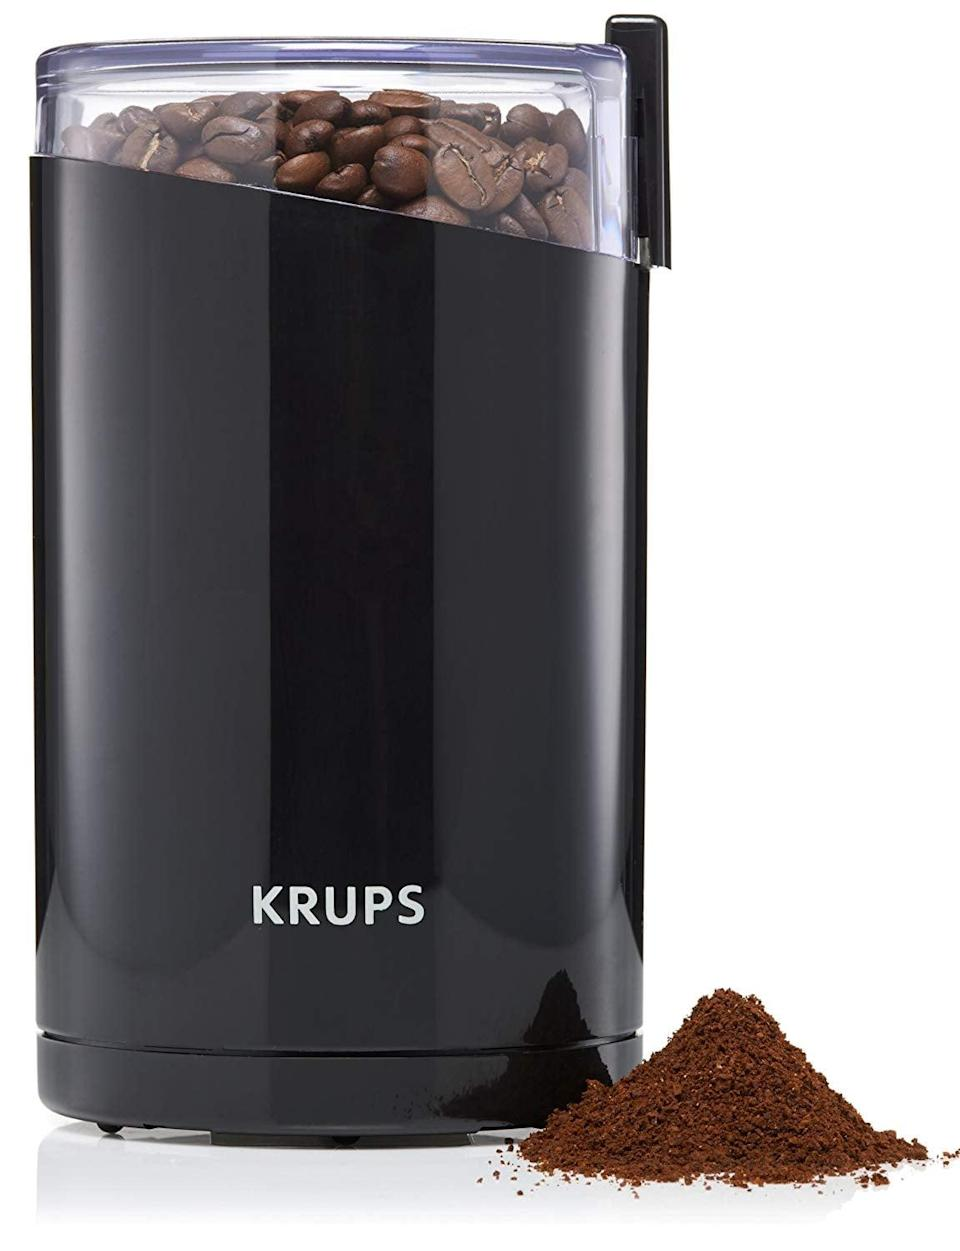 <p>With the <span>Krups Electric Coffee Grinder</span> ($16, originally $30), everyone's lives become so much easier.</p>